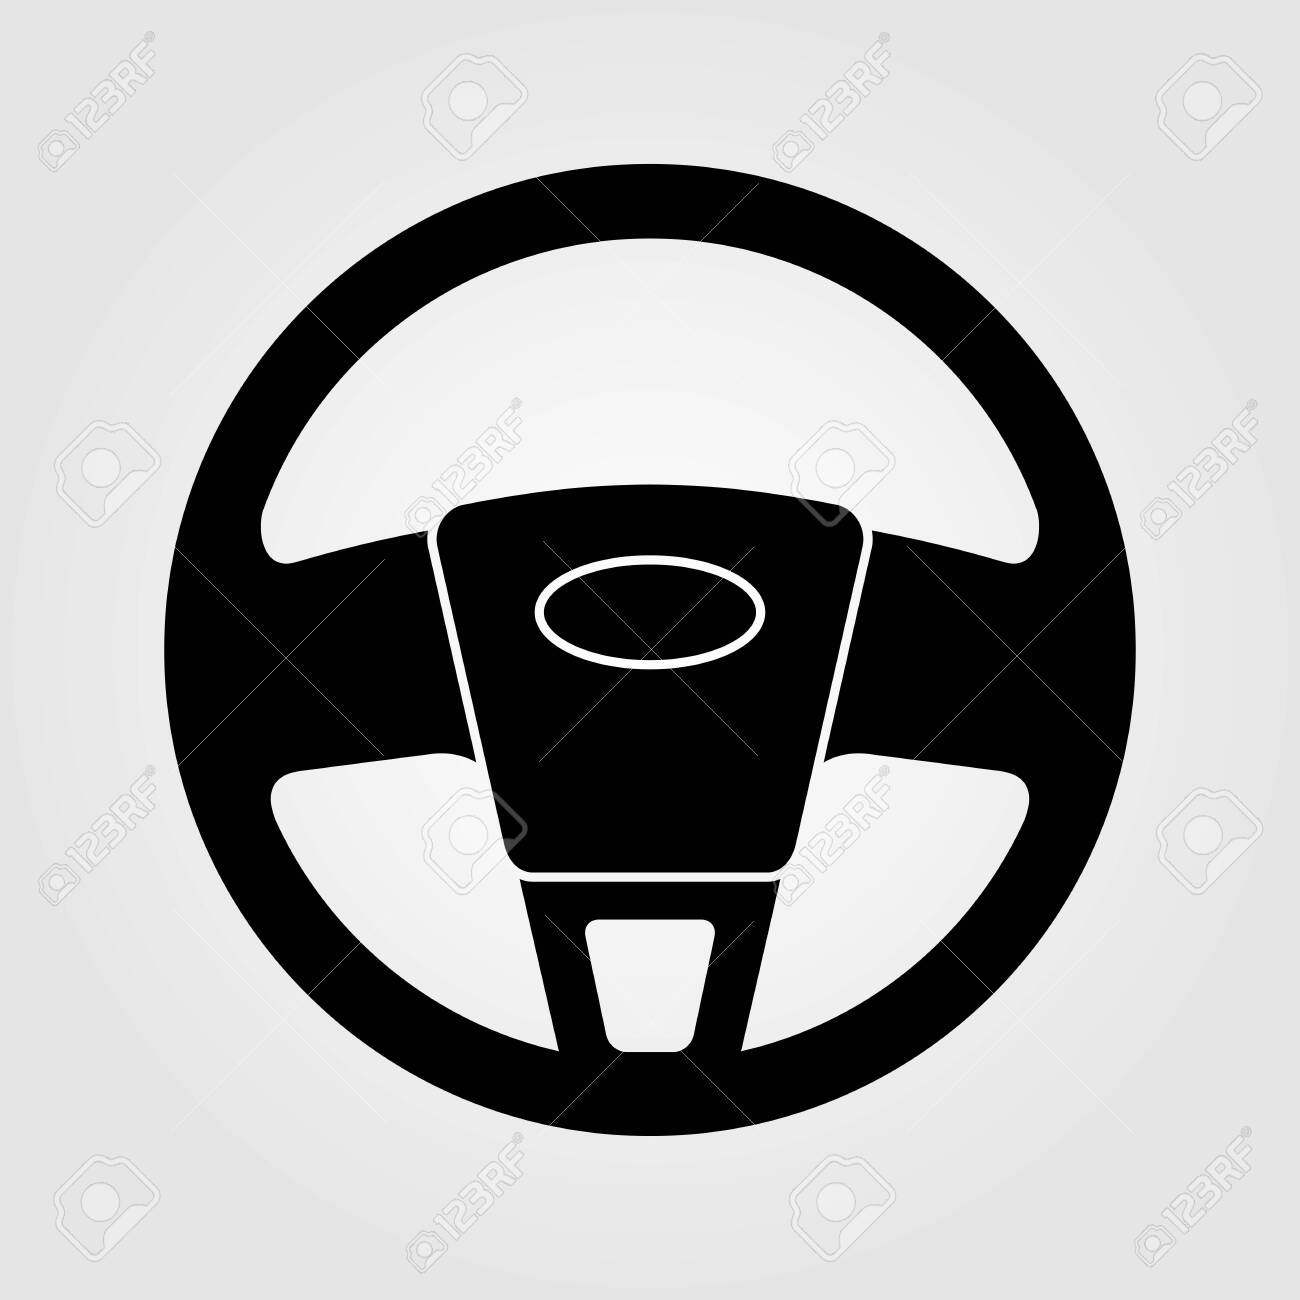 Car Steering wheel icon isolated on white background. Vector illustration. - 127324693